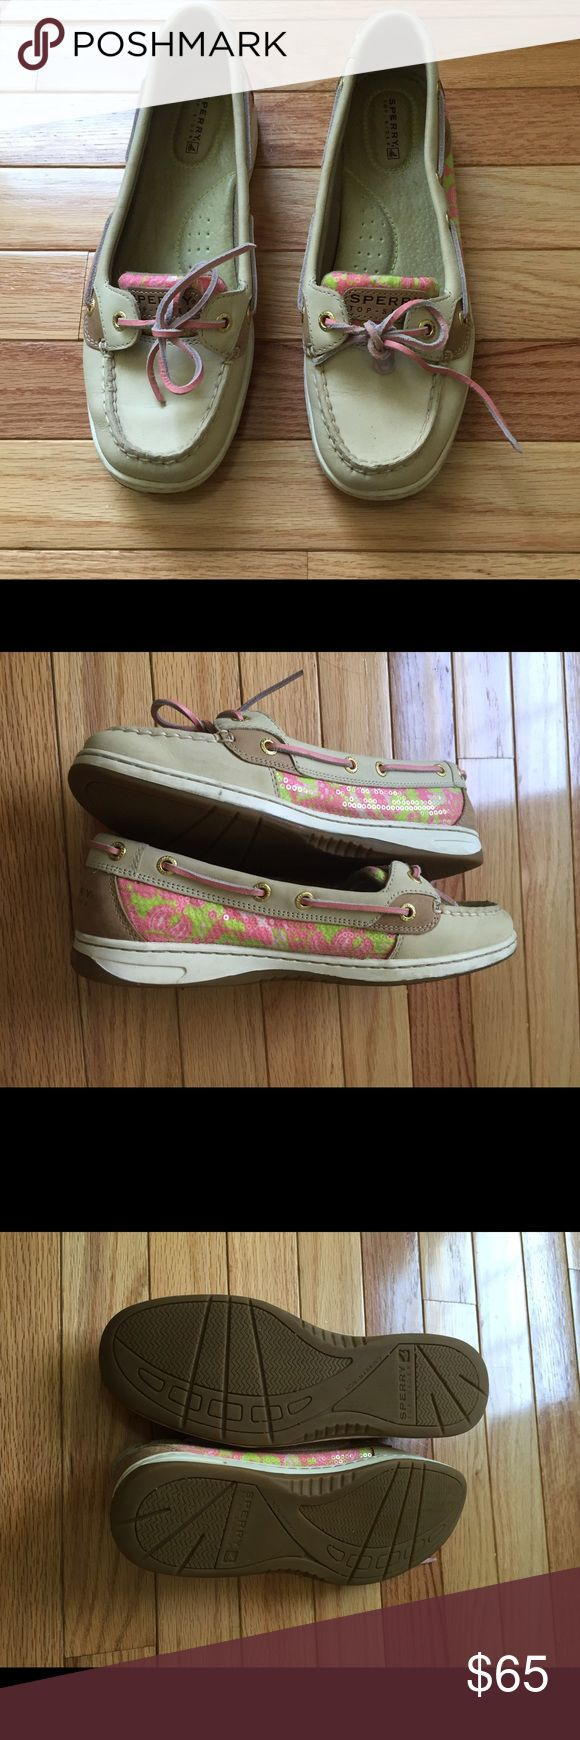 🌼 Pretty Sperry top-siders 🌼 Like new Sperry top-siders. Pretty pink and green sequin design Sperry Top-Sider Shoes